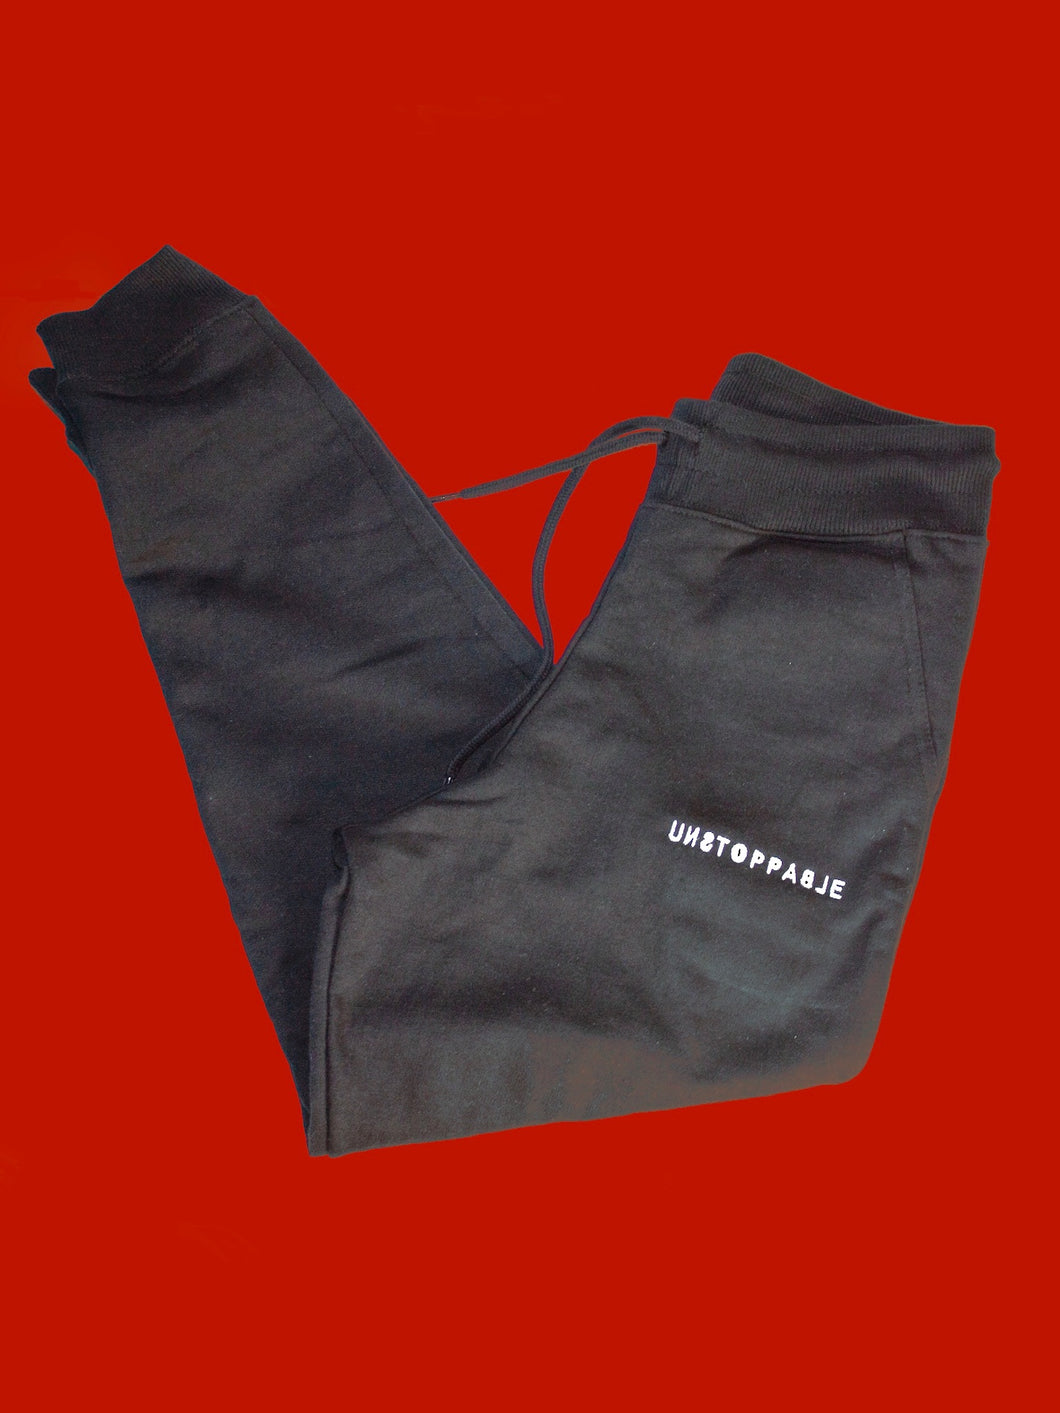 Unstoppable Embroidered sweat pant